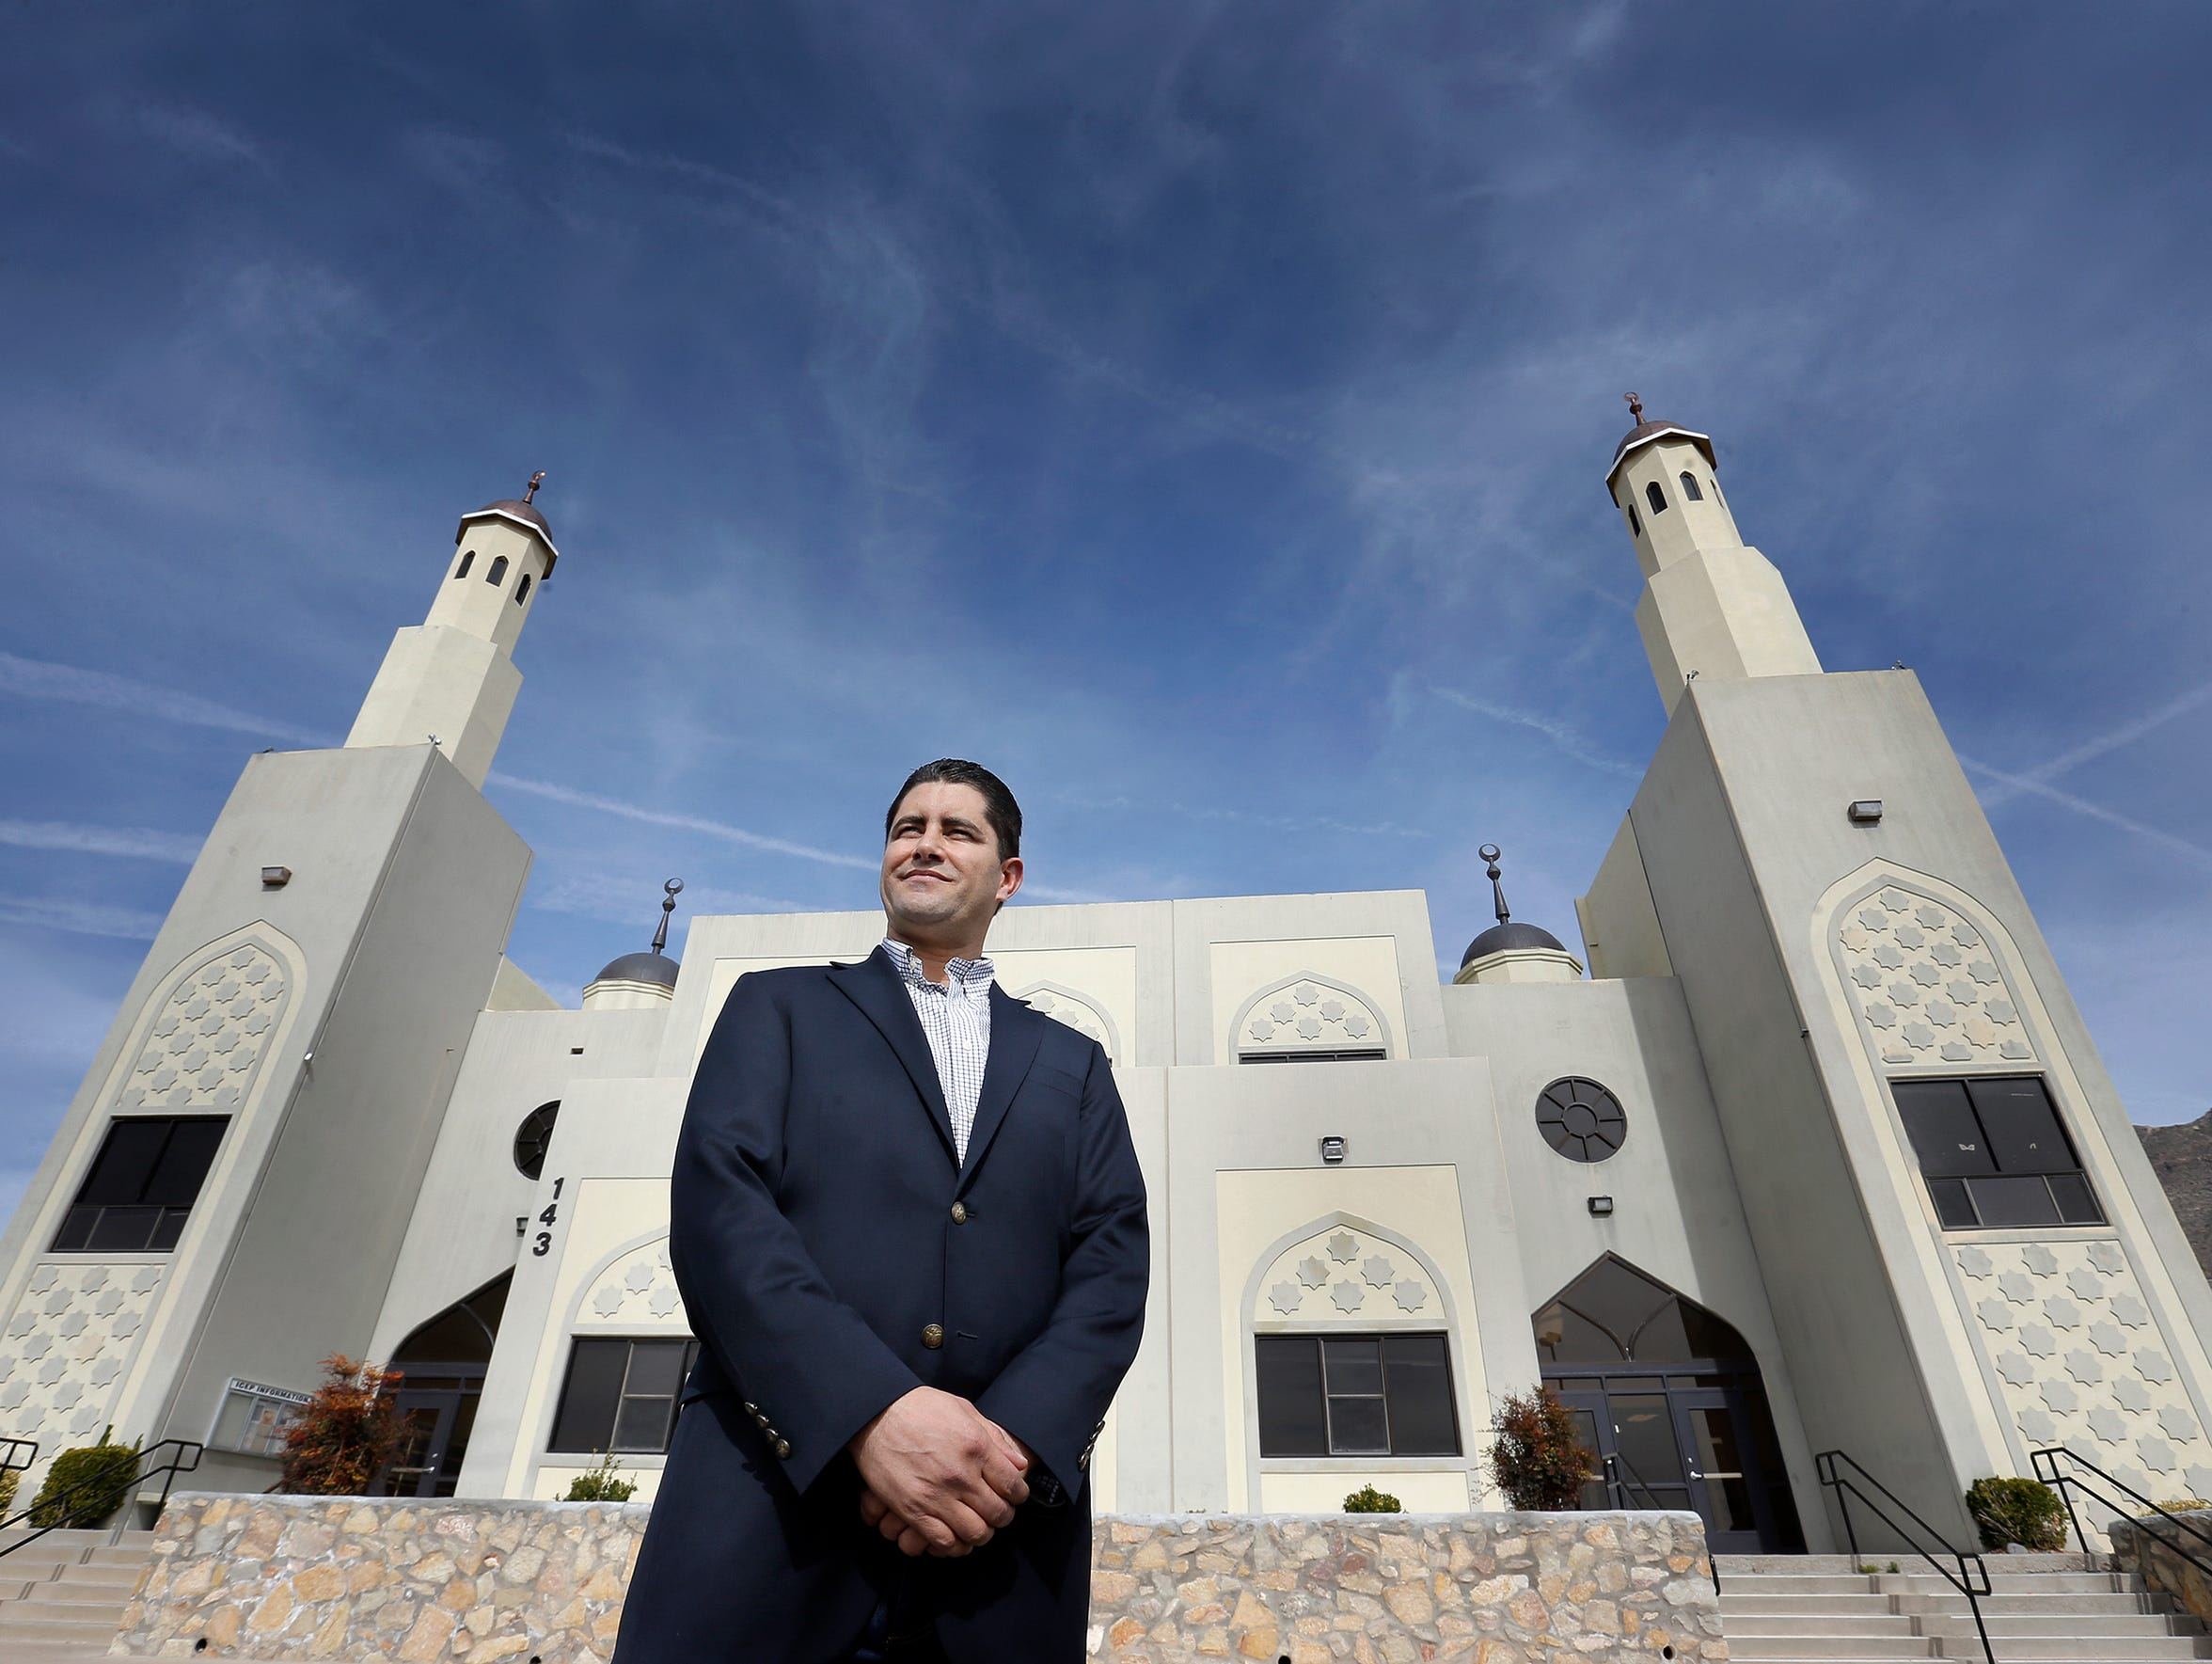 Ali Mchiri, who is on the board of the Islamic Center